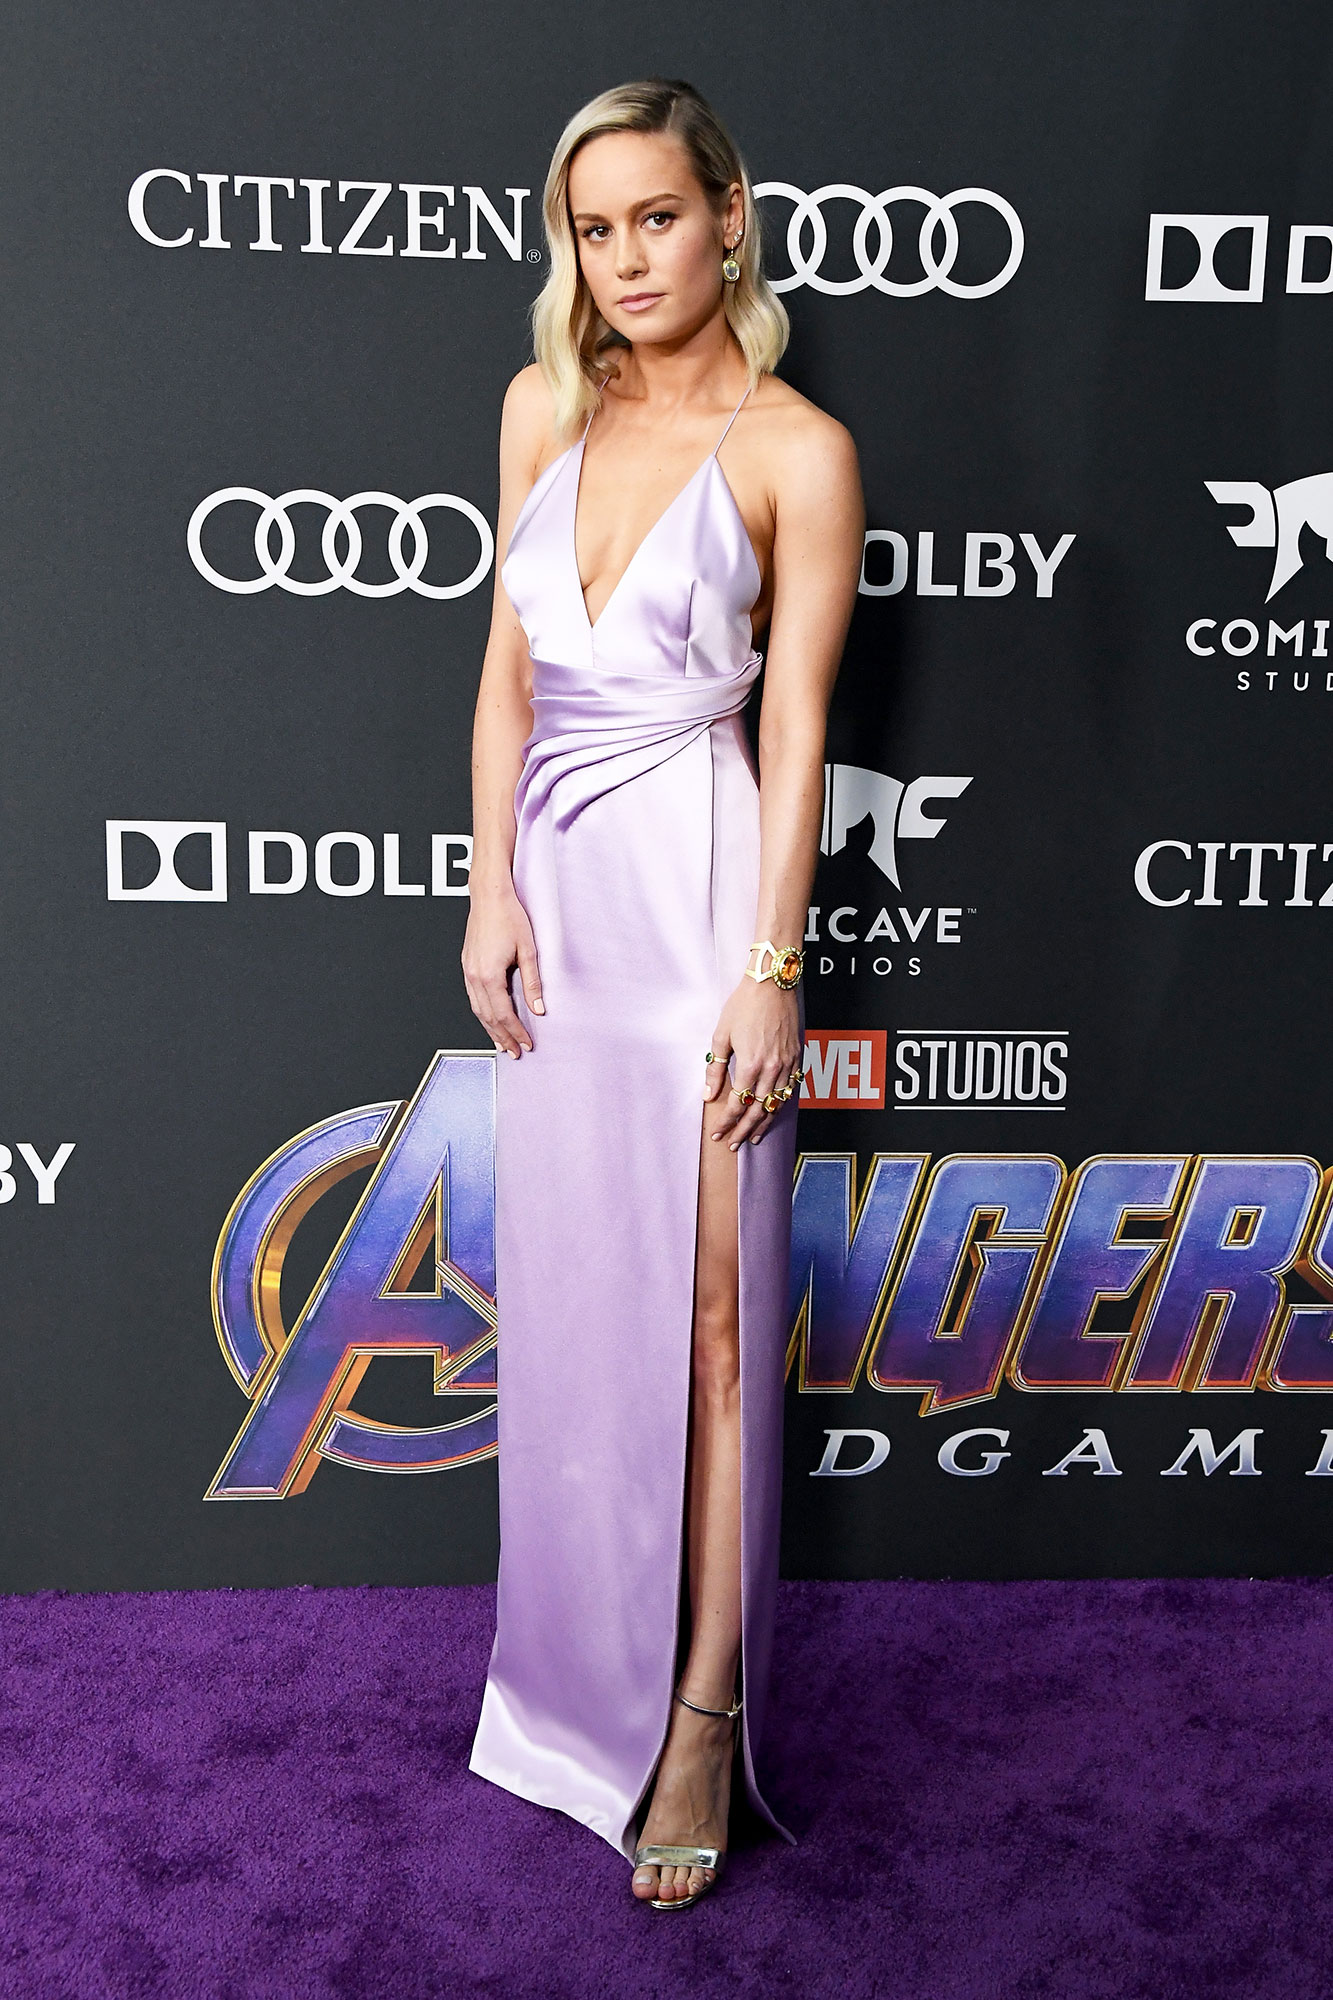 Avengers Premiere Brie Larson - Wearing a slinky lavender Celine gown and Christian Louboutin sandals.